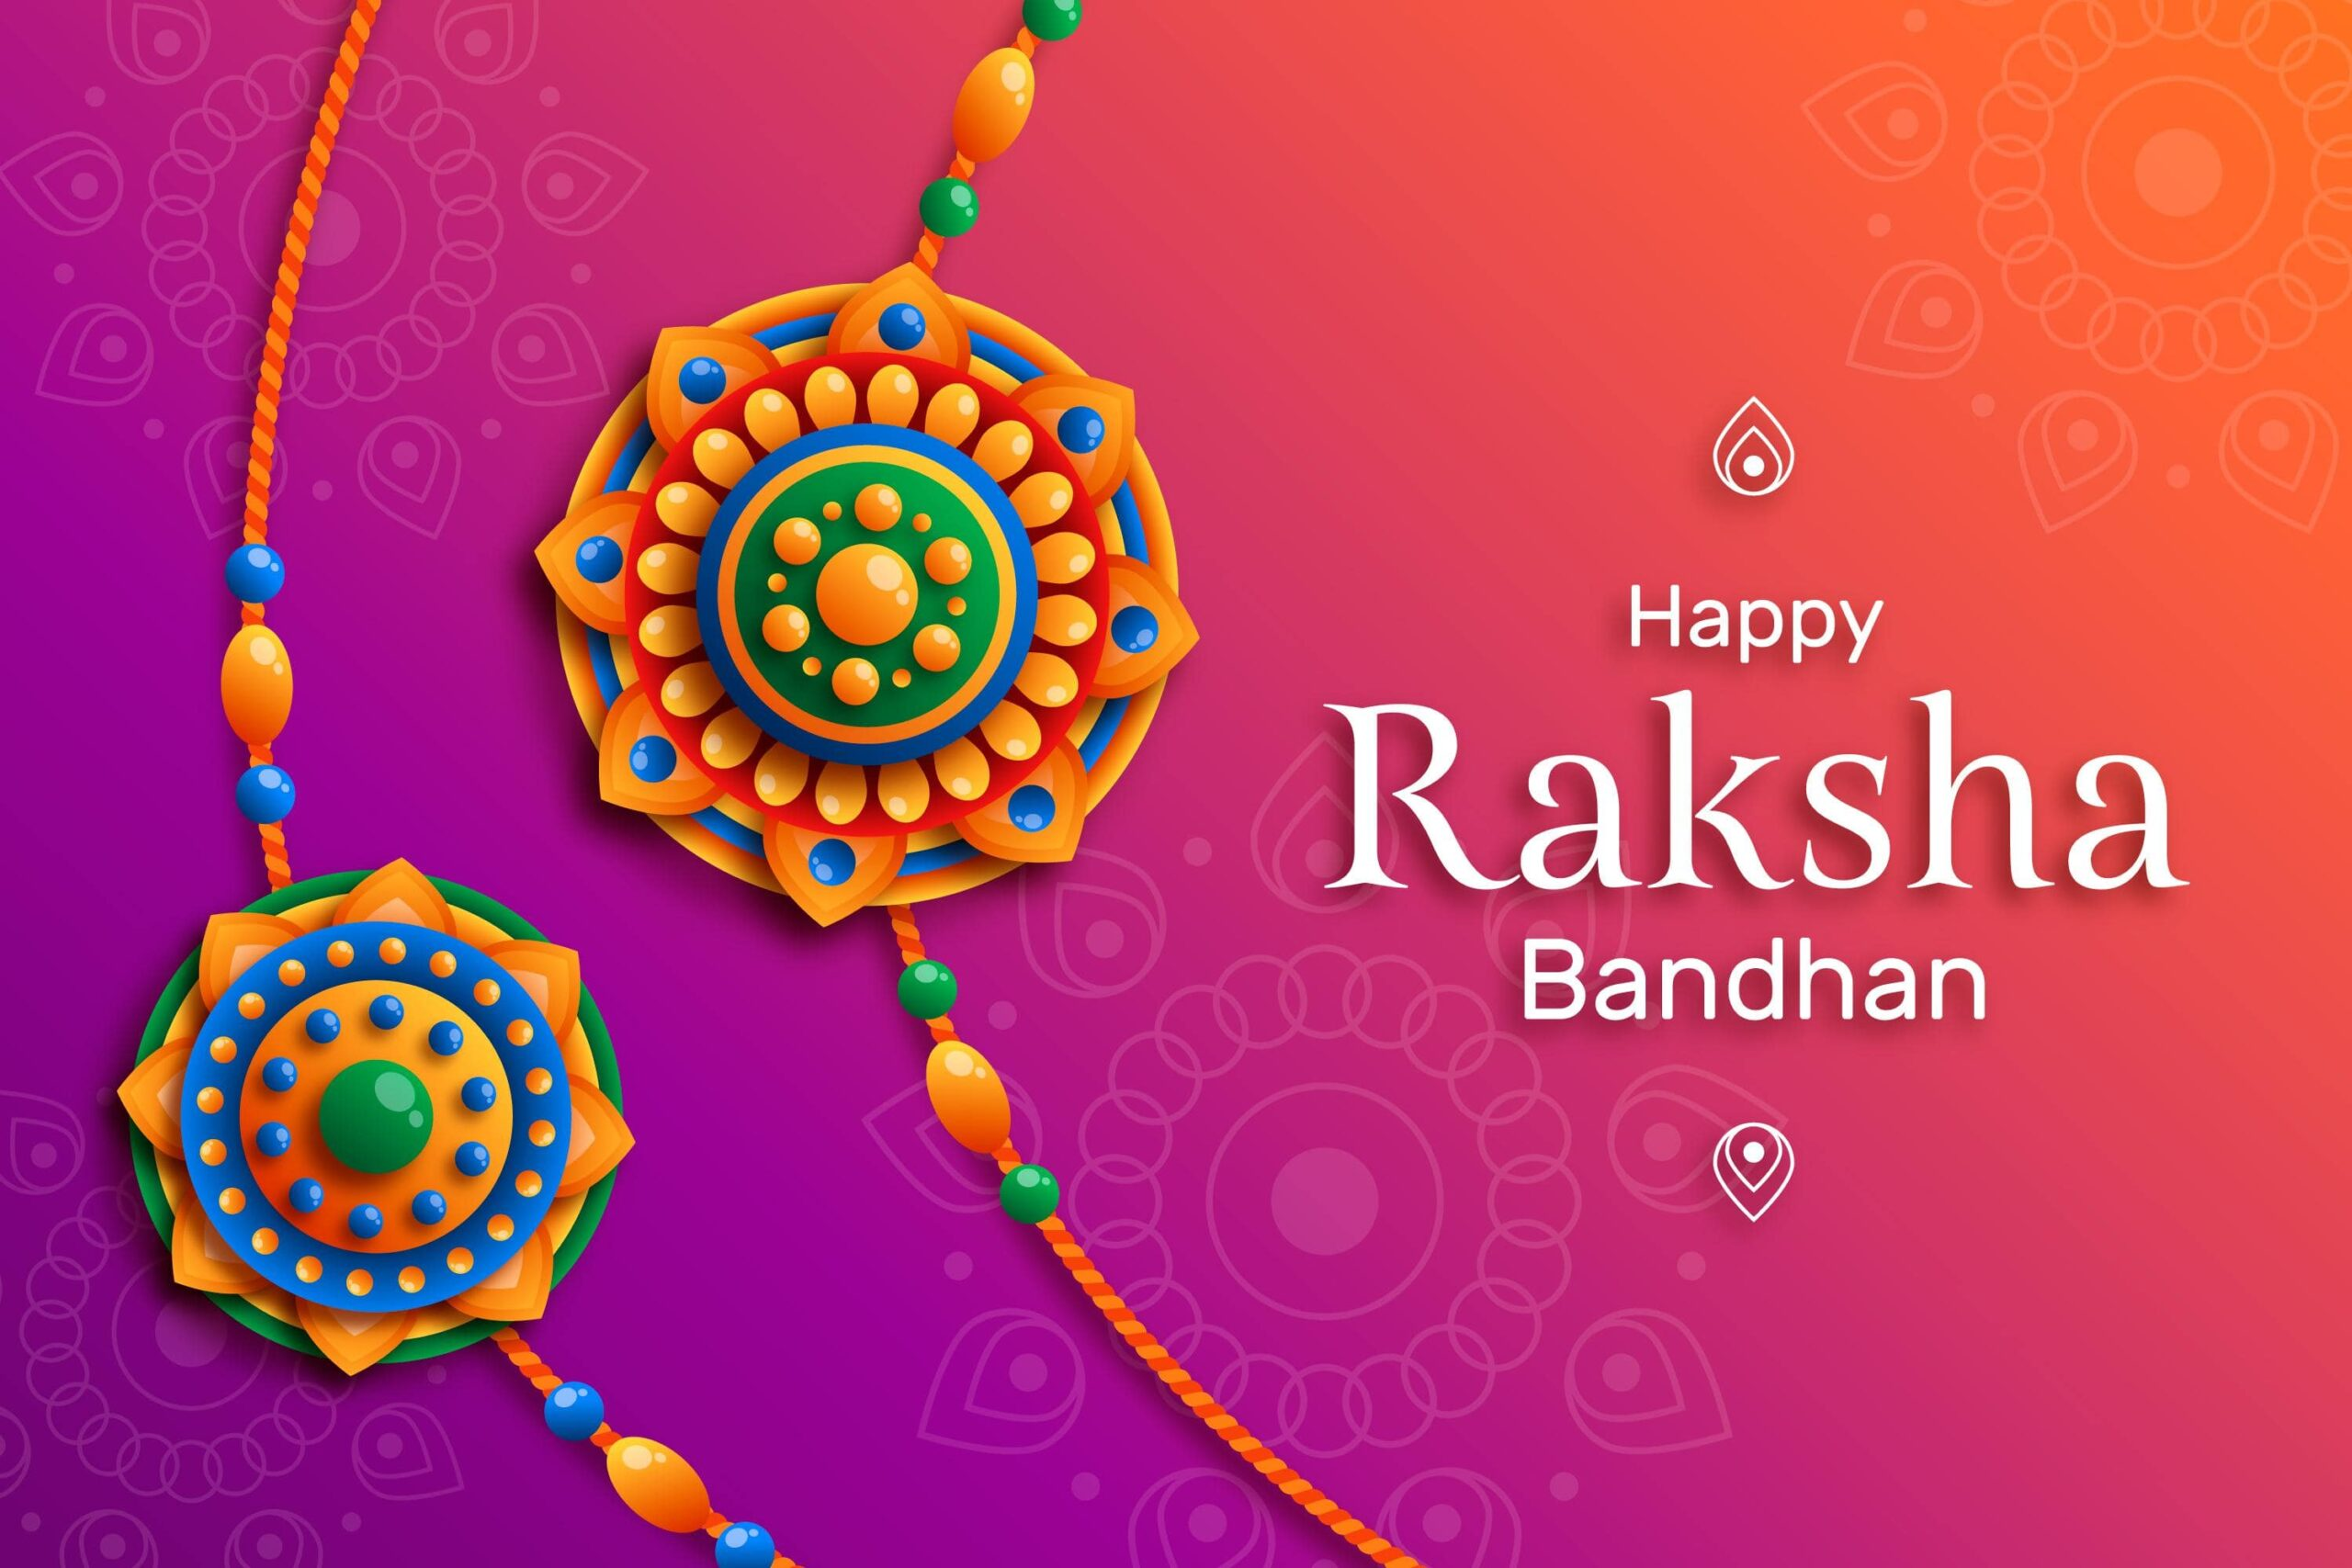 Raksha Bandhan 2020: Date, Time and Muhurat